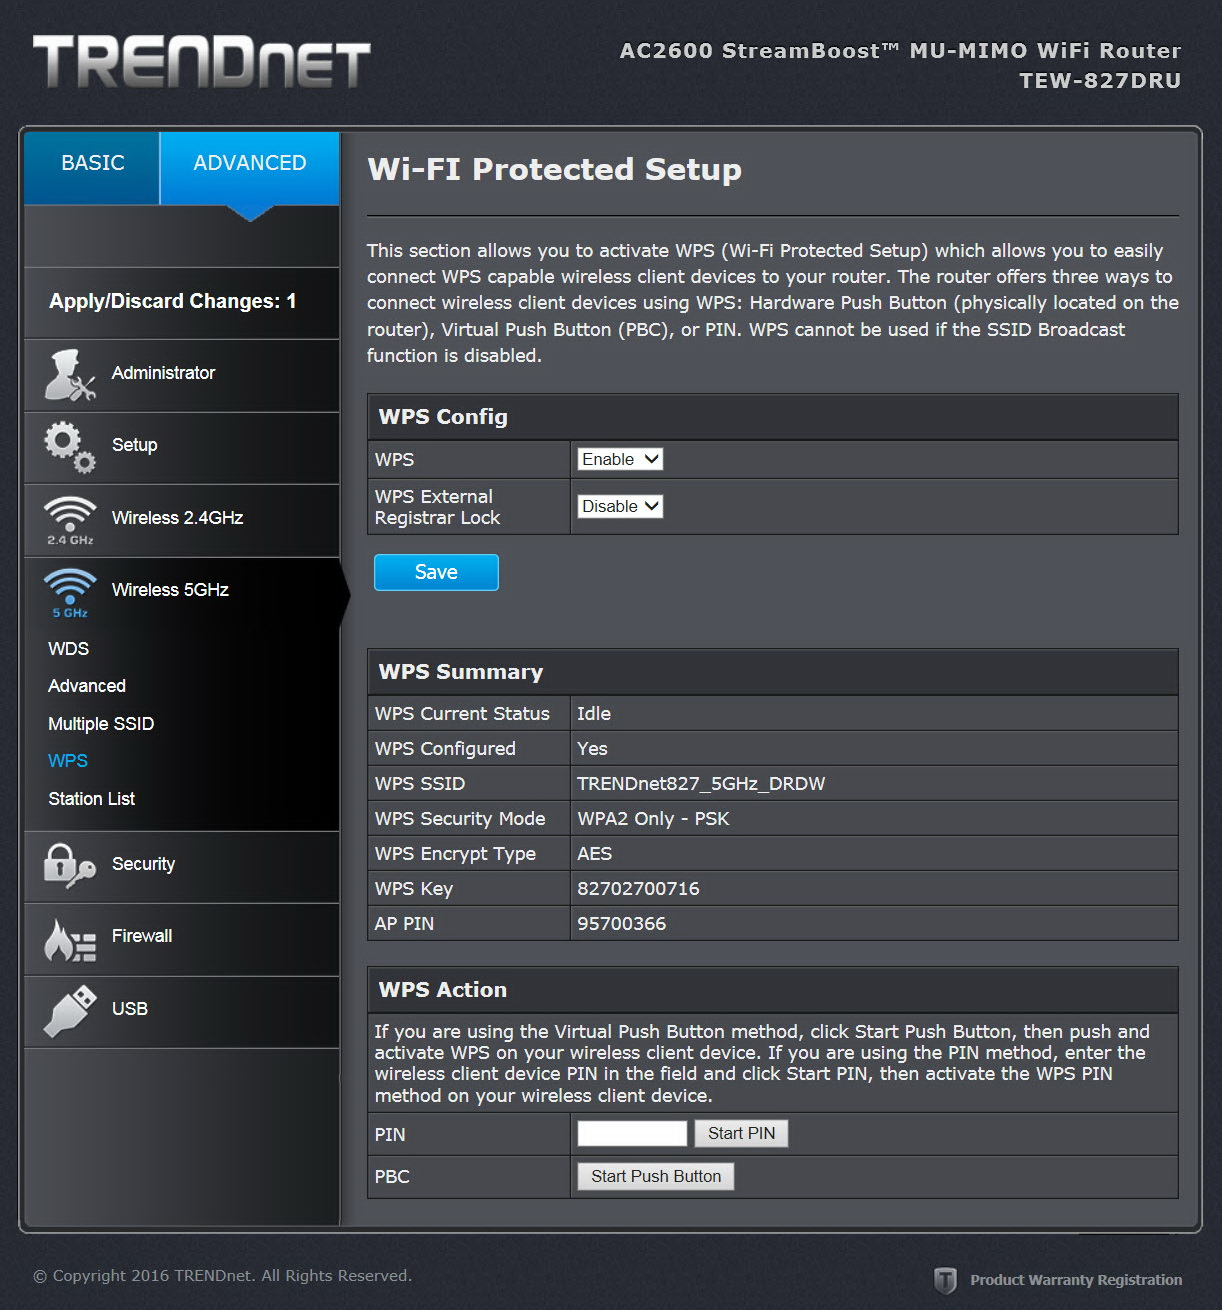 how to set time for device on trendnet dru 812